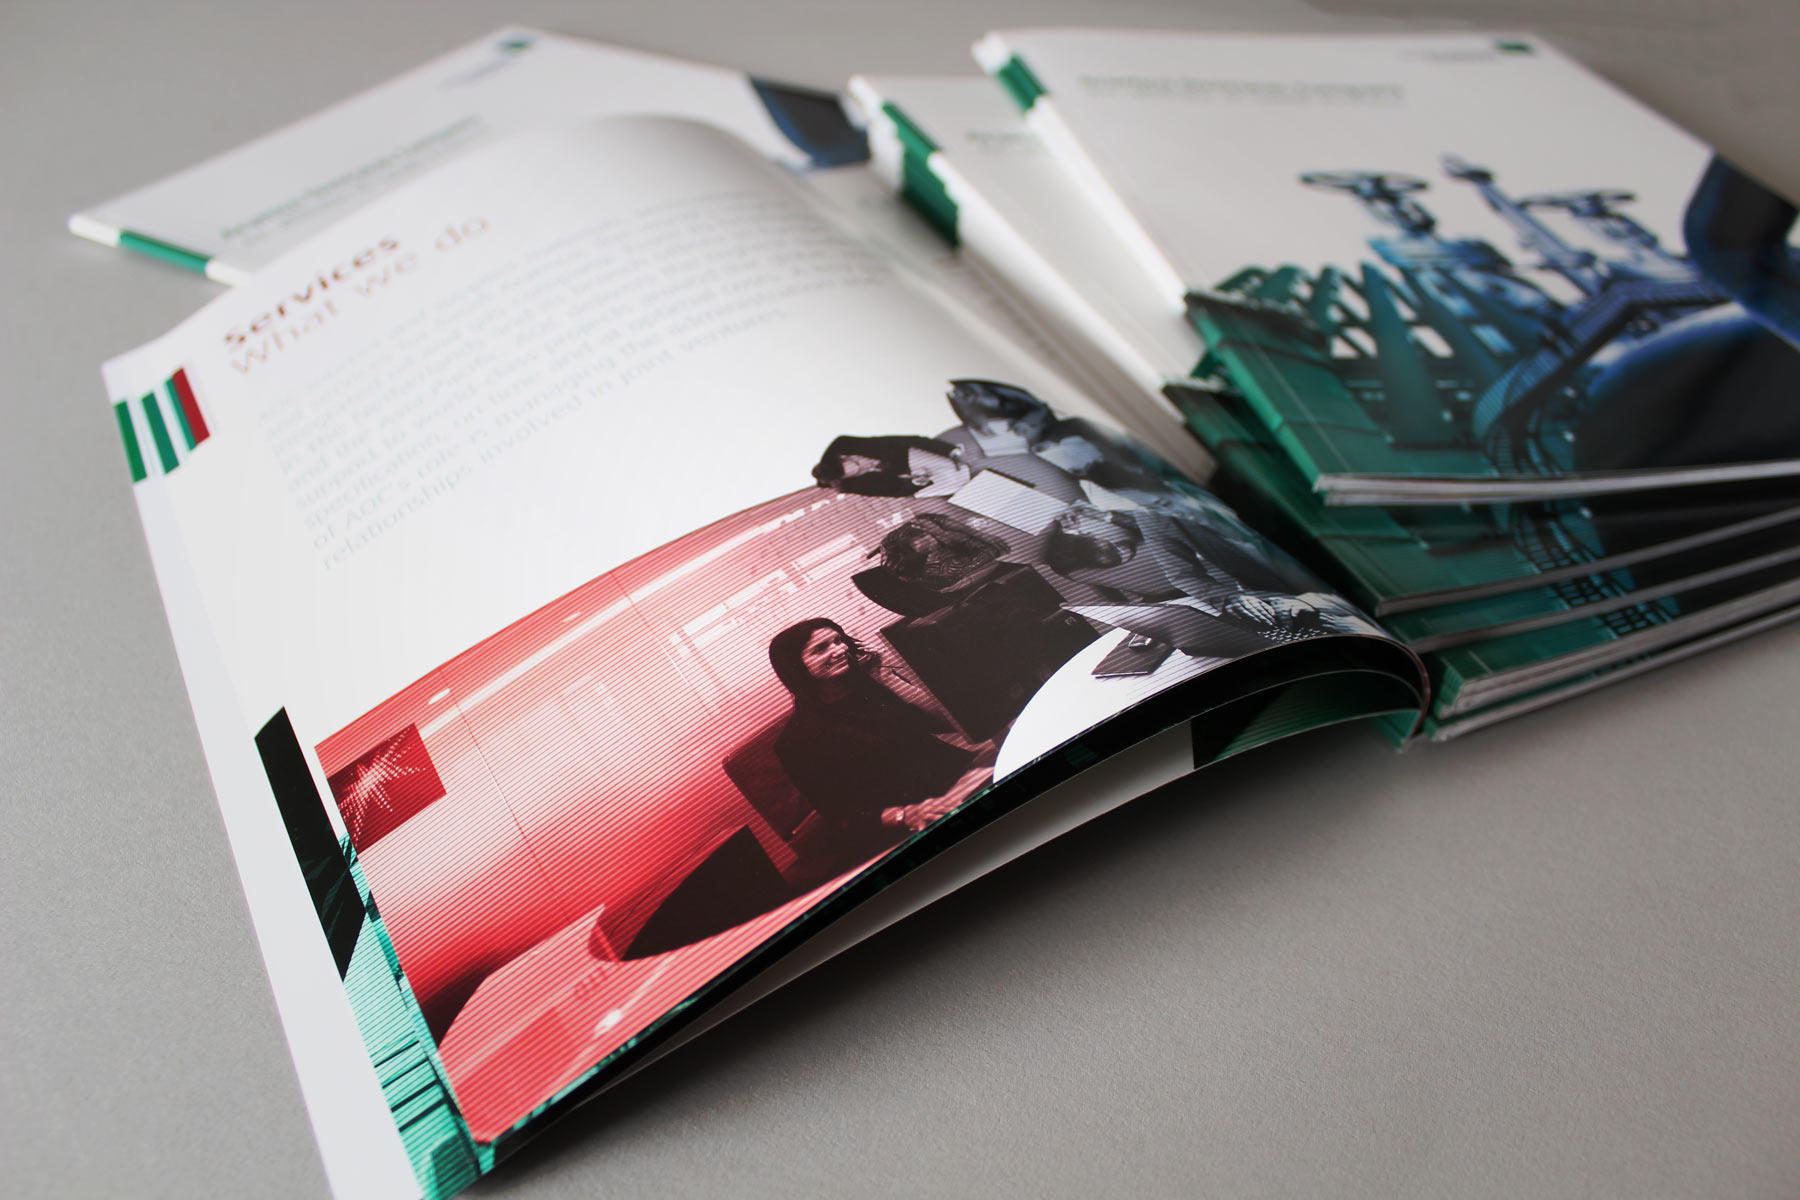 The final 48 page publication blends a cohesive corporate communication with a striking supporting image suite.